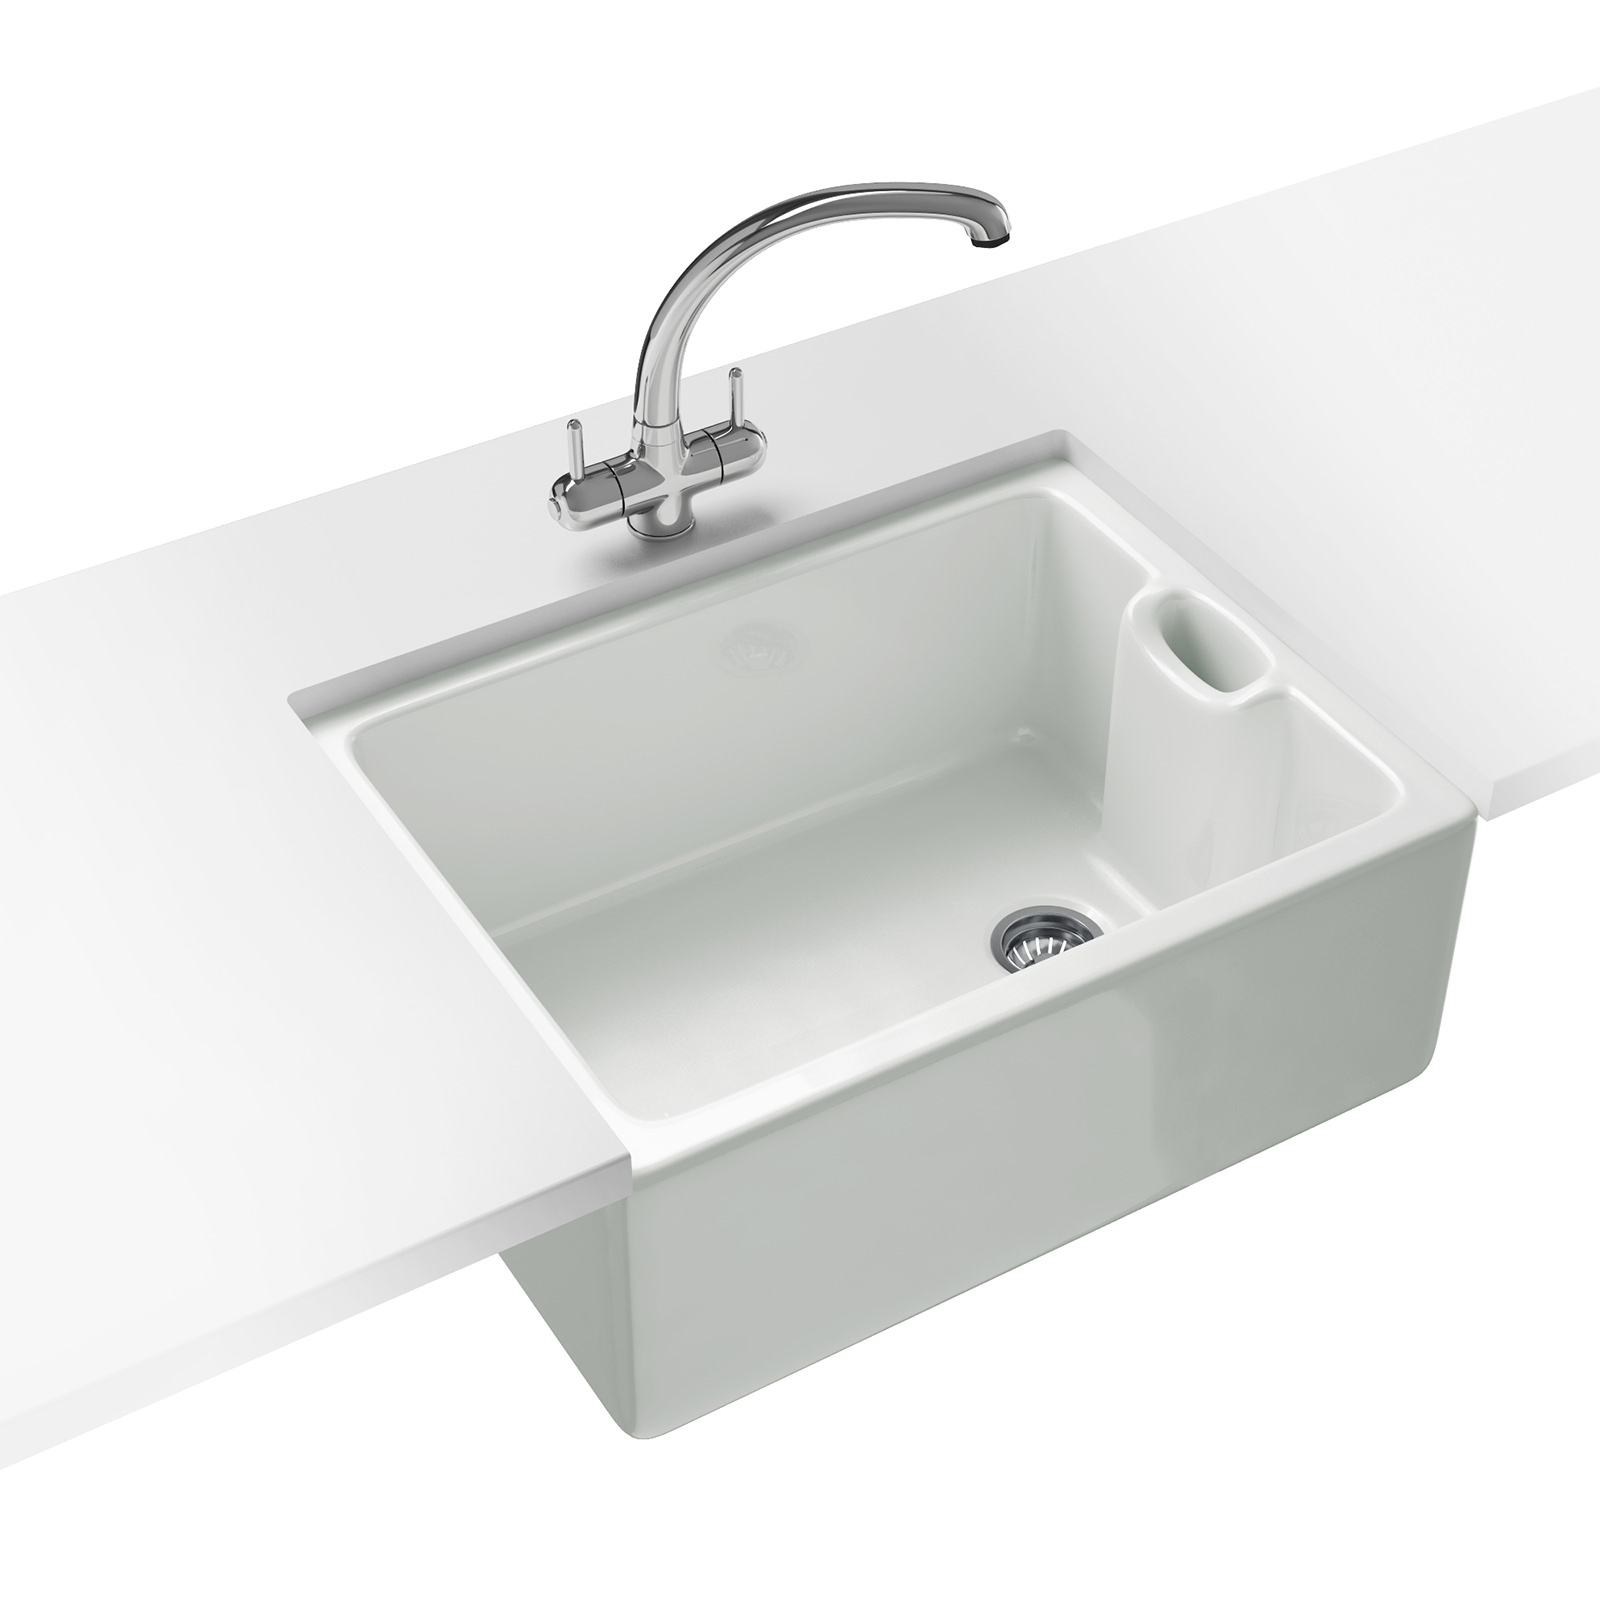 Franke White Composite Sink : Franke Belfast Propack BAK 710 Ceramic White Kitchen Sink And Tap ...